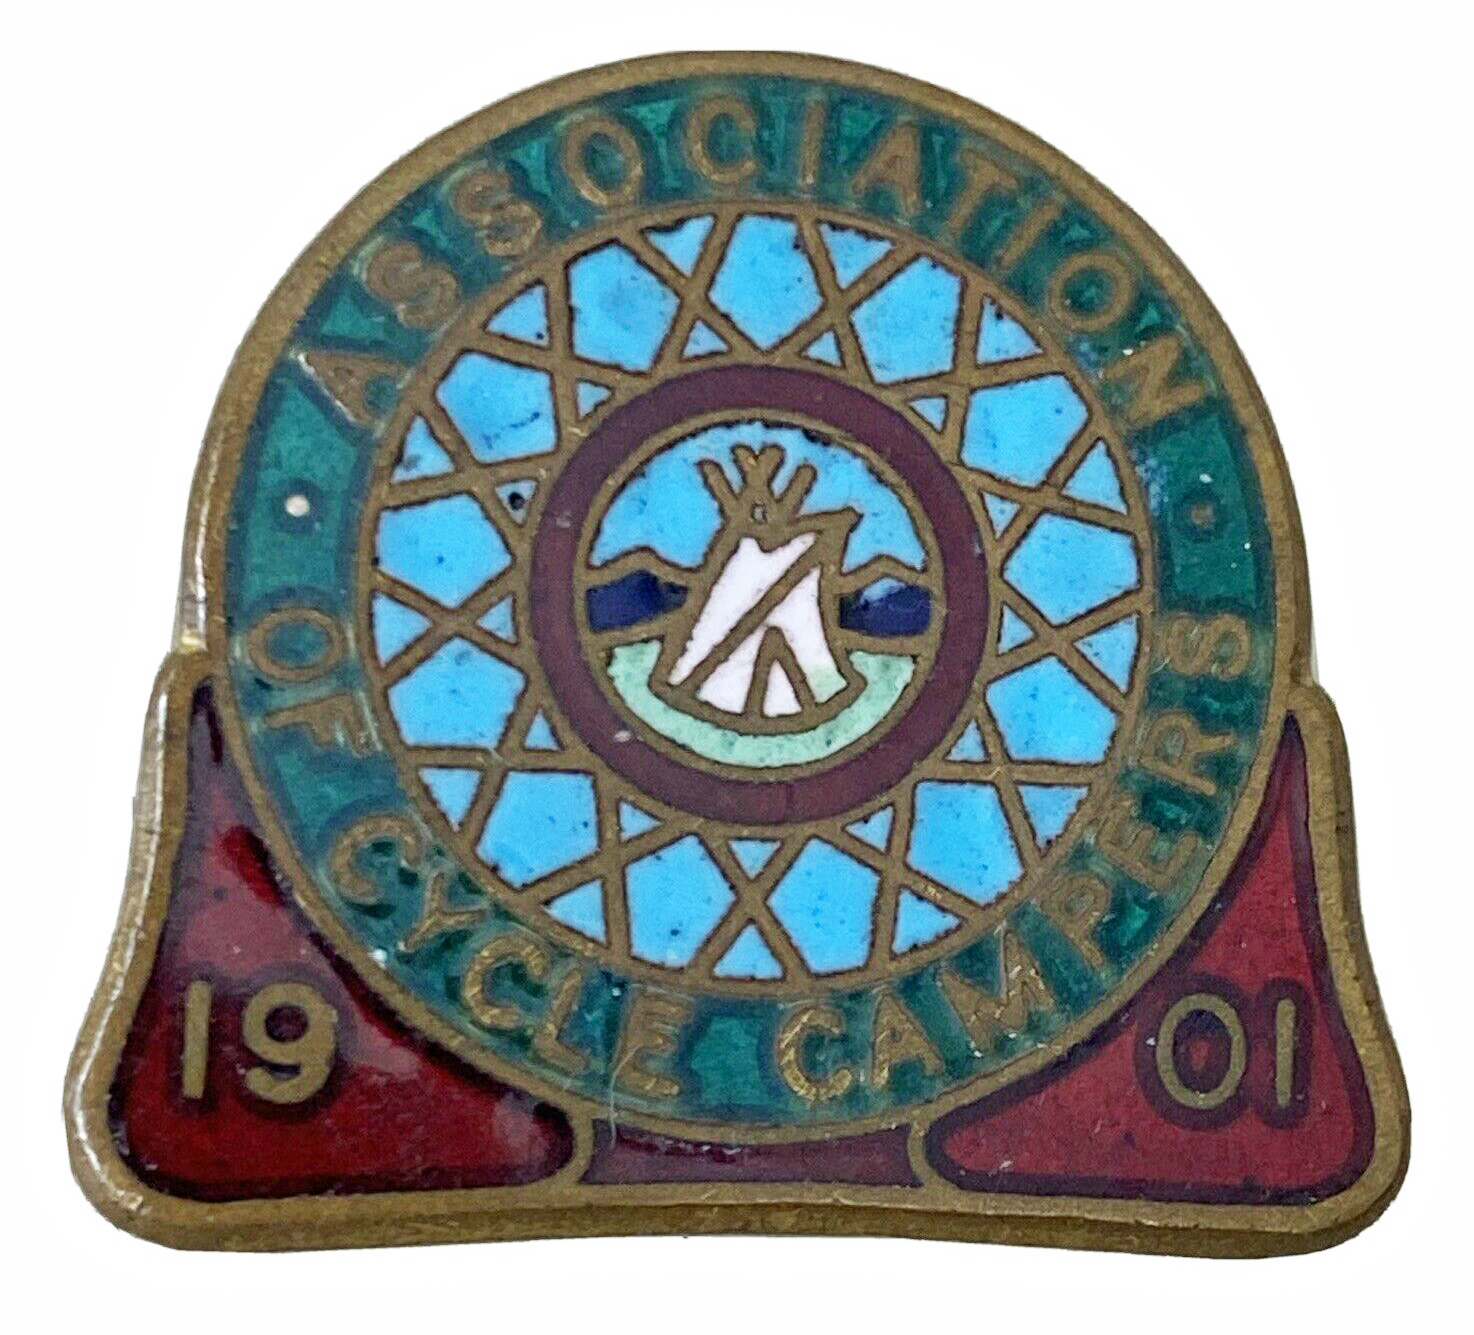 Association of Cycle Campers. Enamel badges were first introduced in 1904